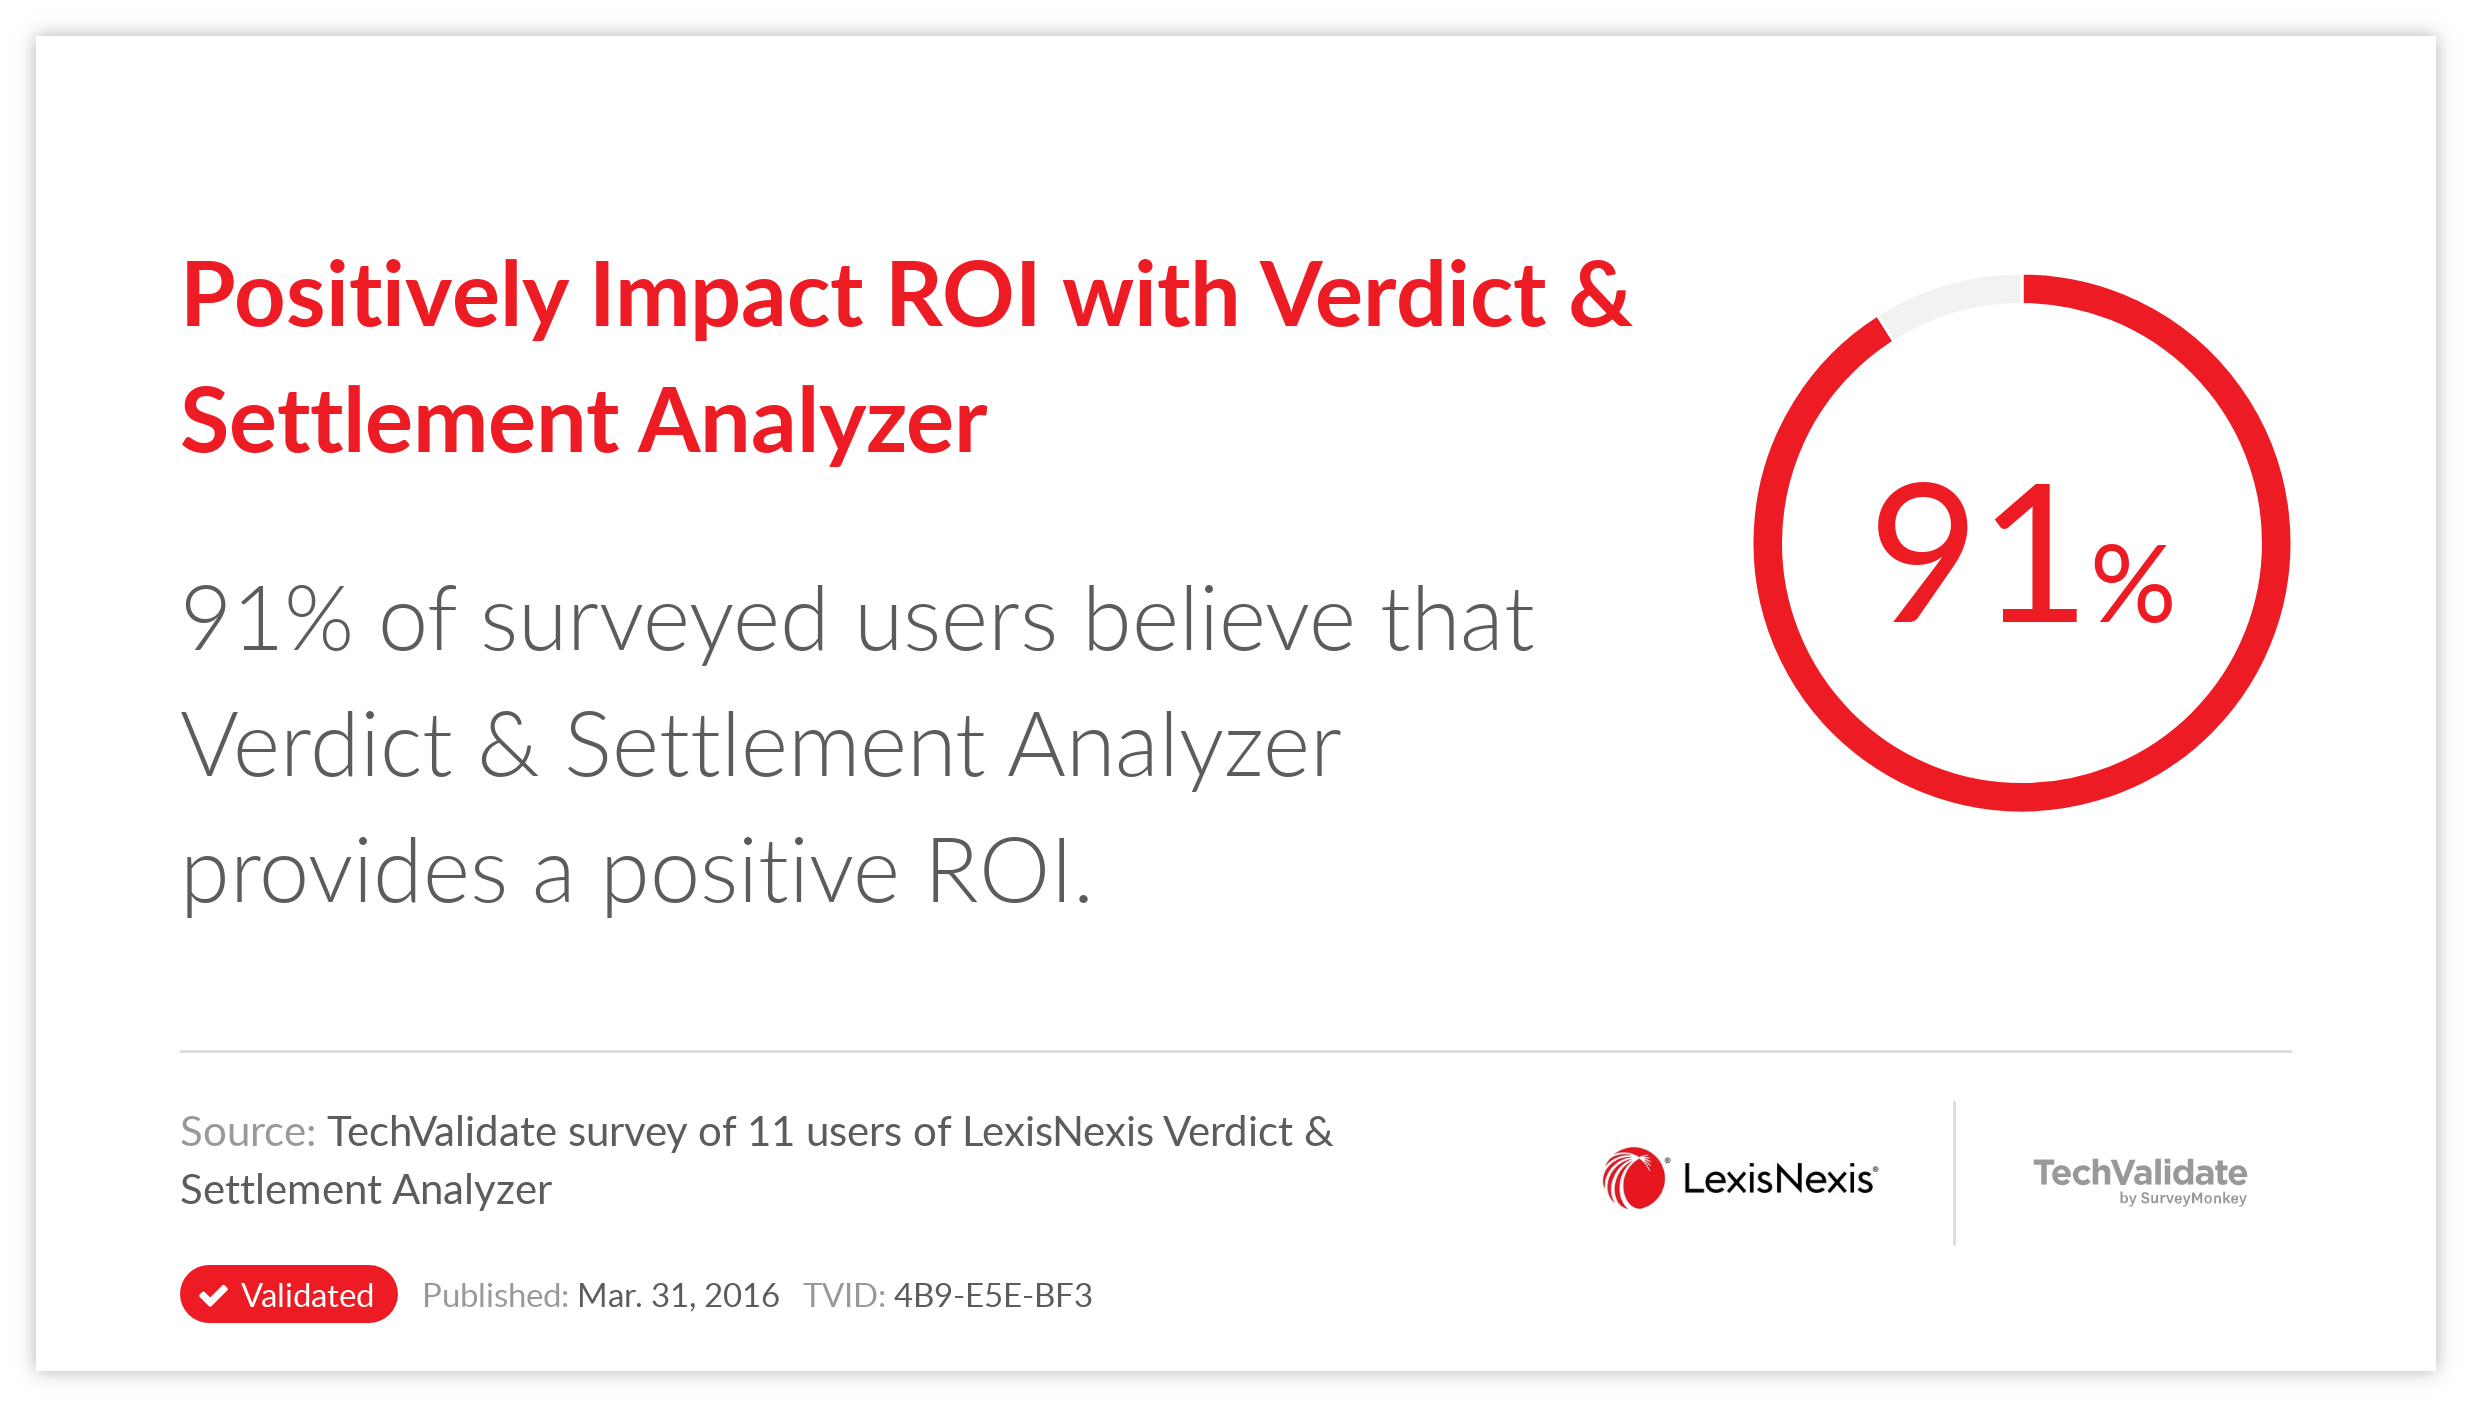 Positively Impact ROI with Verdict & Settlement Analyzer